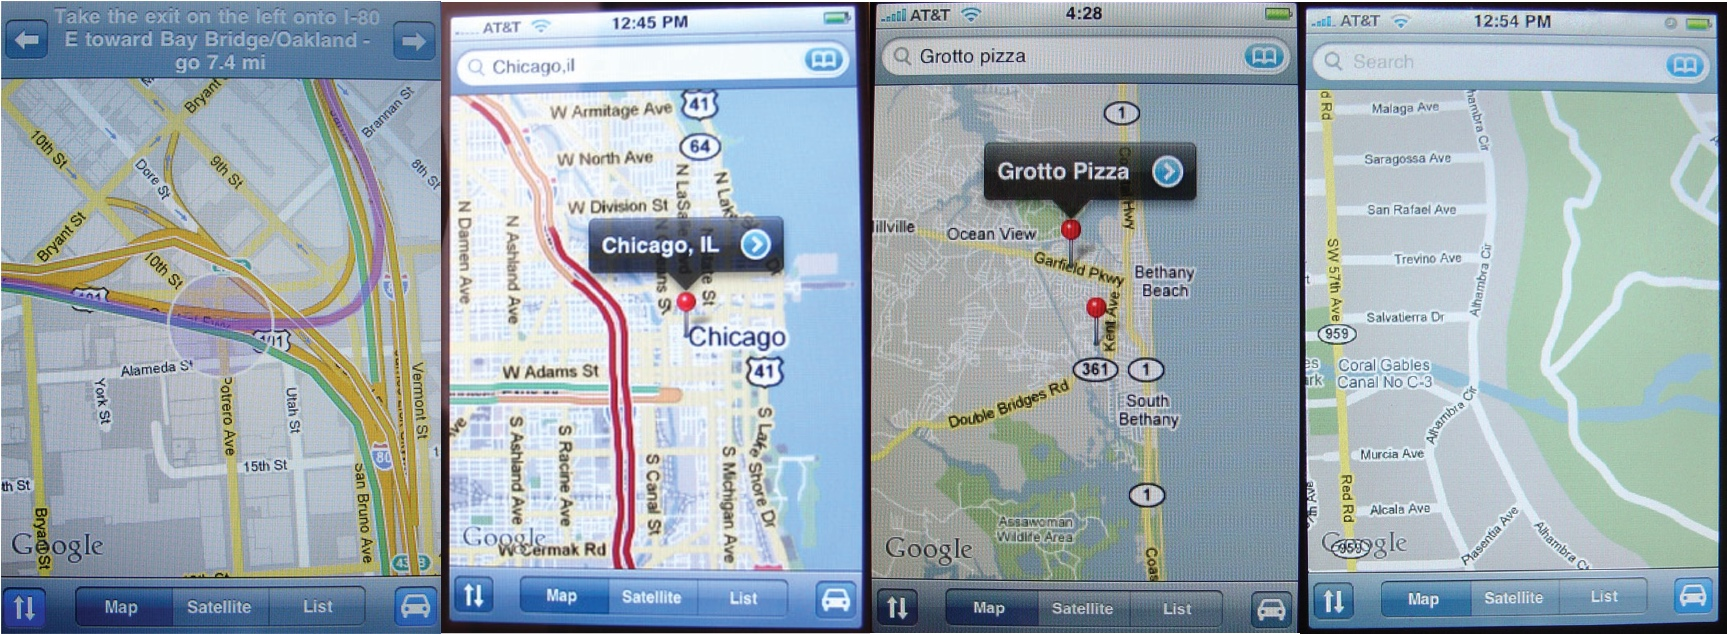 iPhone OS 1 Google Maps app (2007)